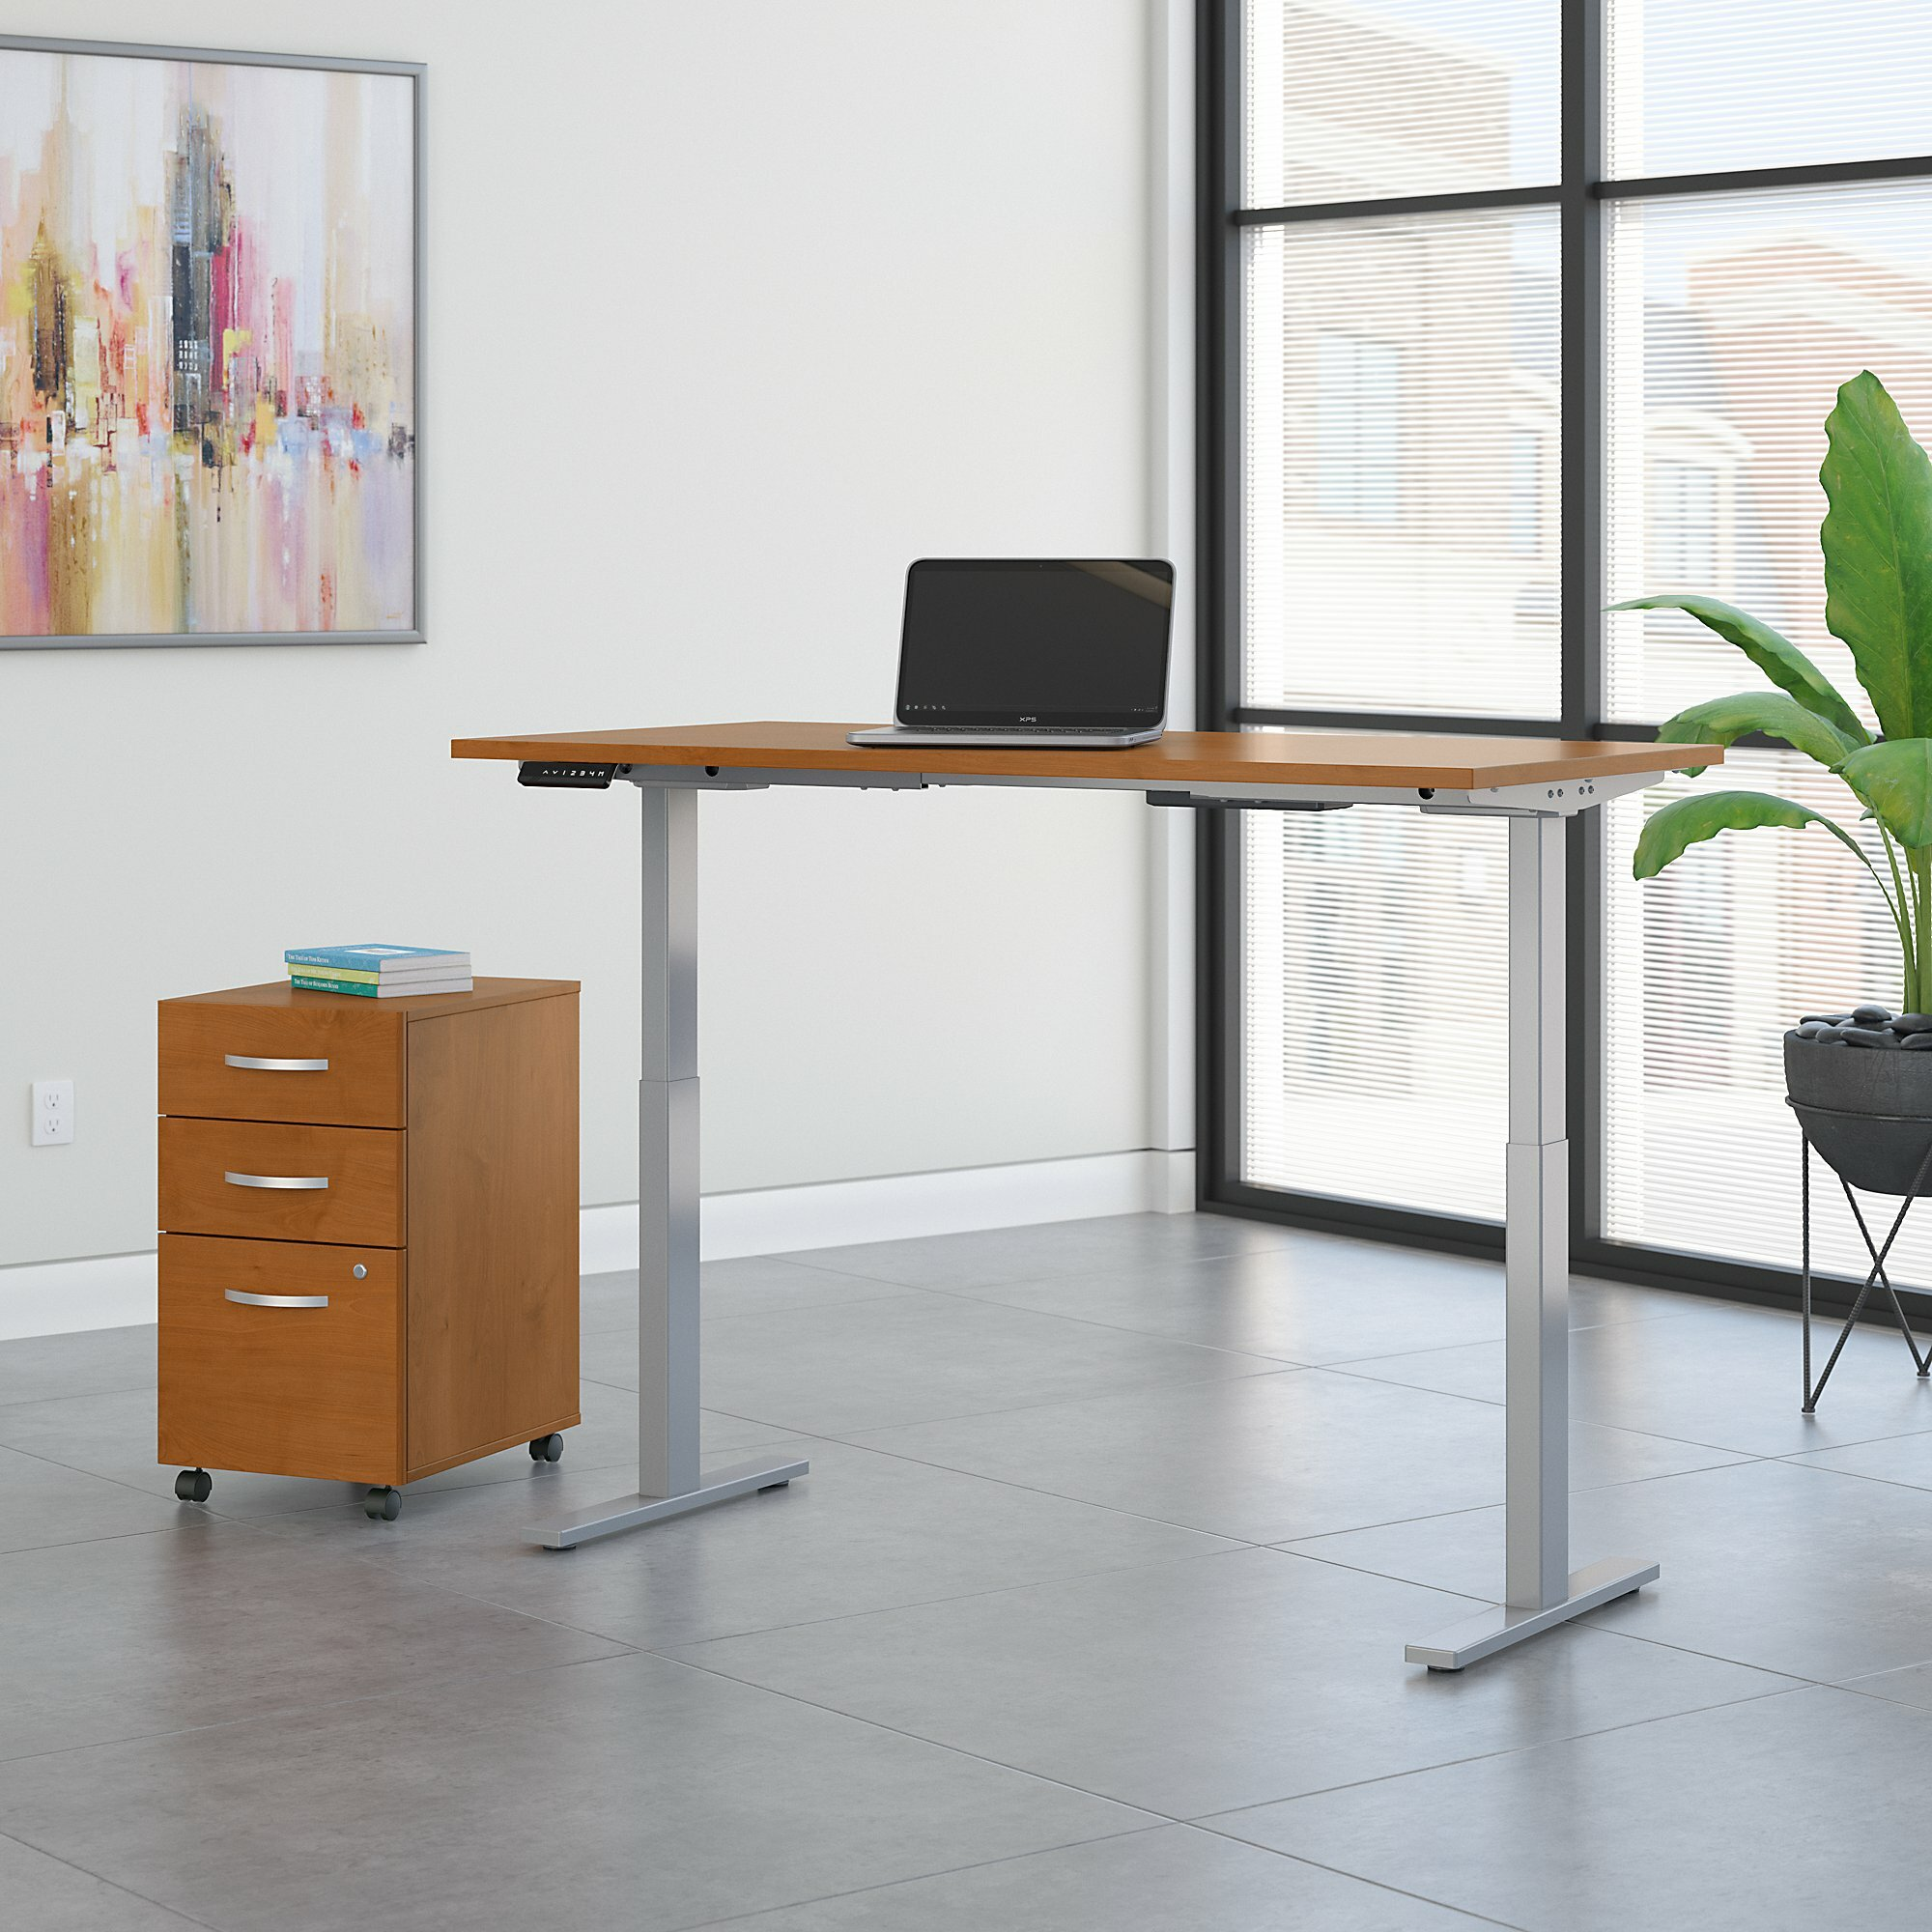 Phenomenal Move 60 Series Adjustable Standing Desk Home Interior And Landscaping Elinuenasavecom